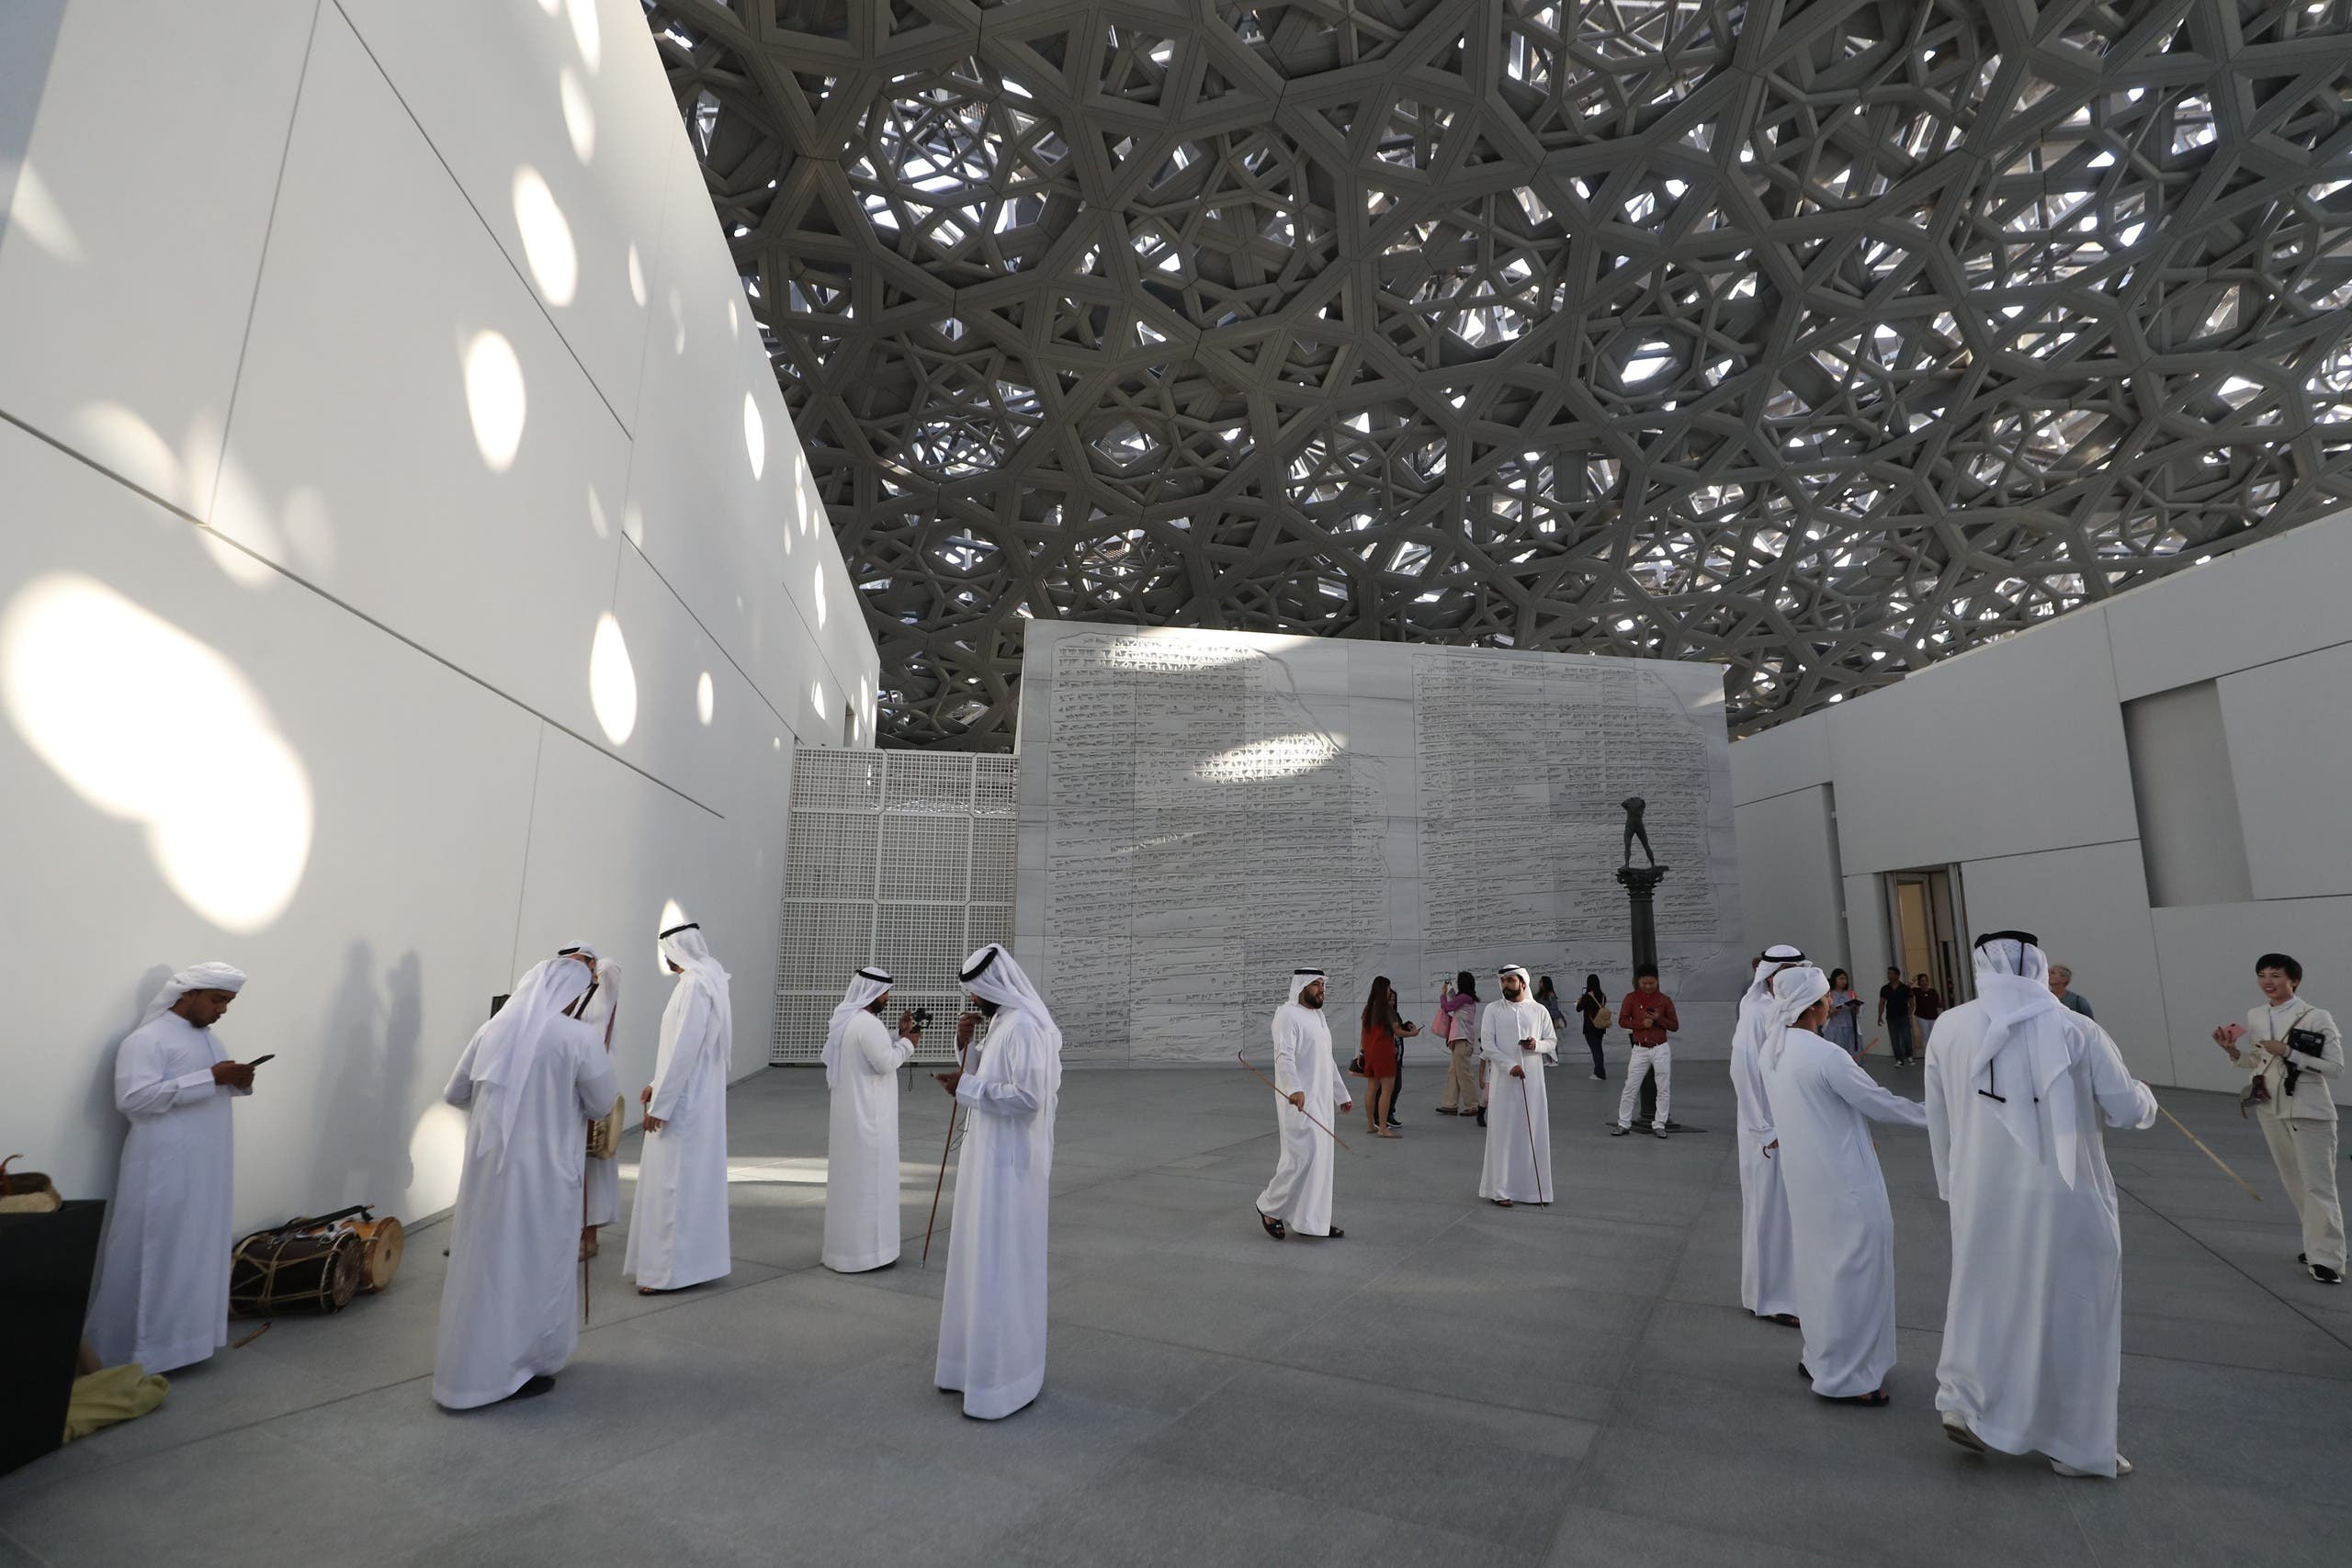 Dubai visitors to Louvre - Feb 2019 - AFP